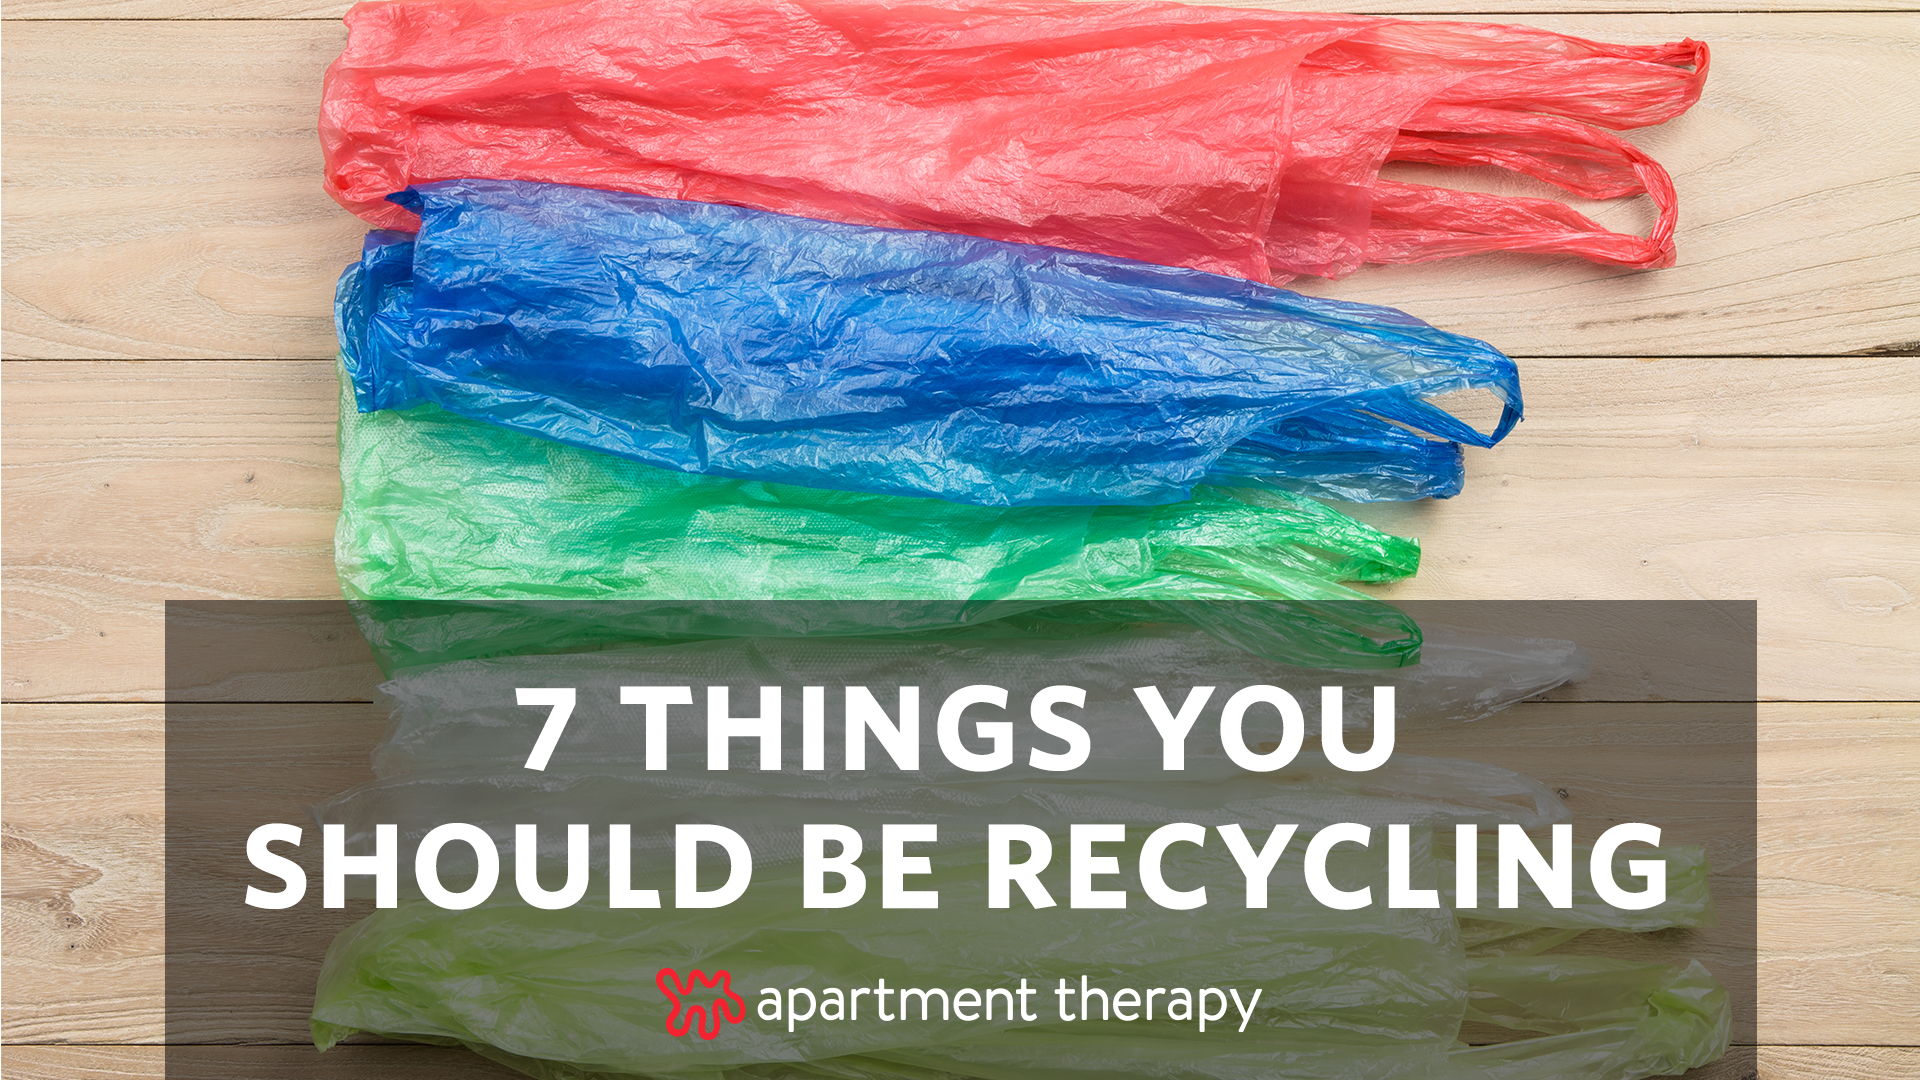 Unexpected Things To Recycle Electronics Aerosol Cans Aluminum Foil Ink Cartridges Apartment Therapy